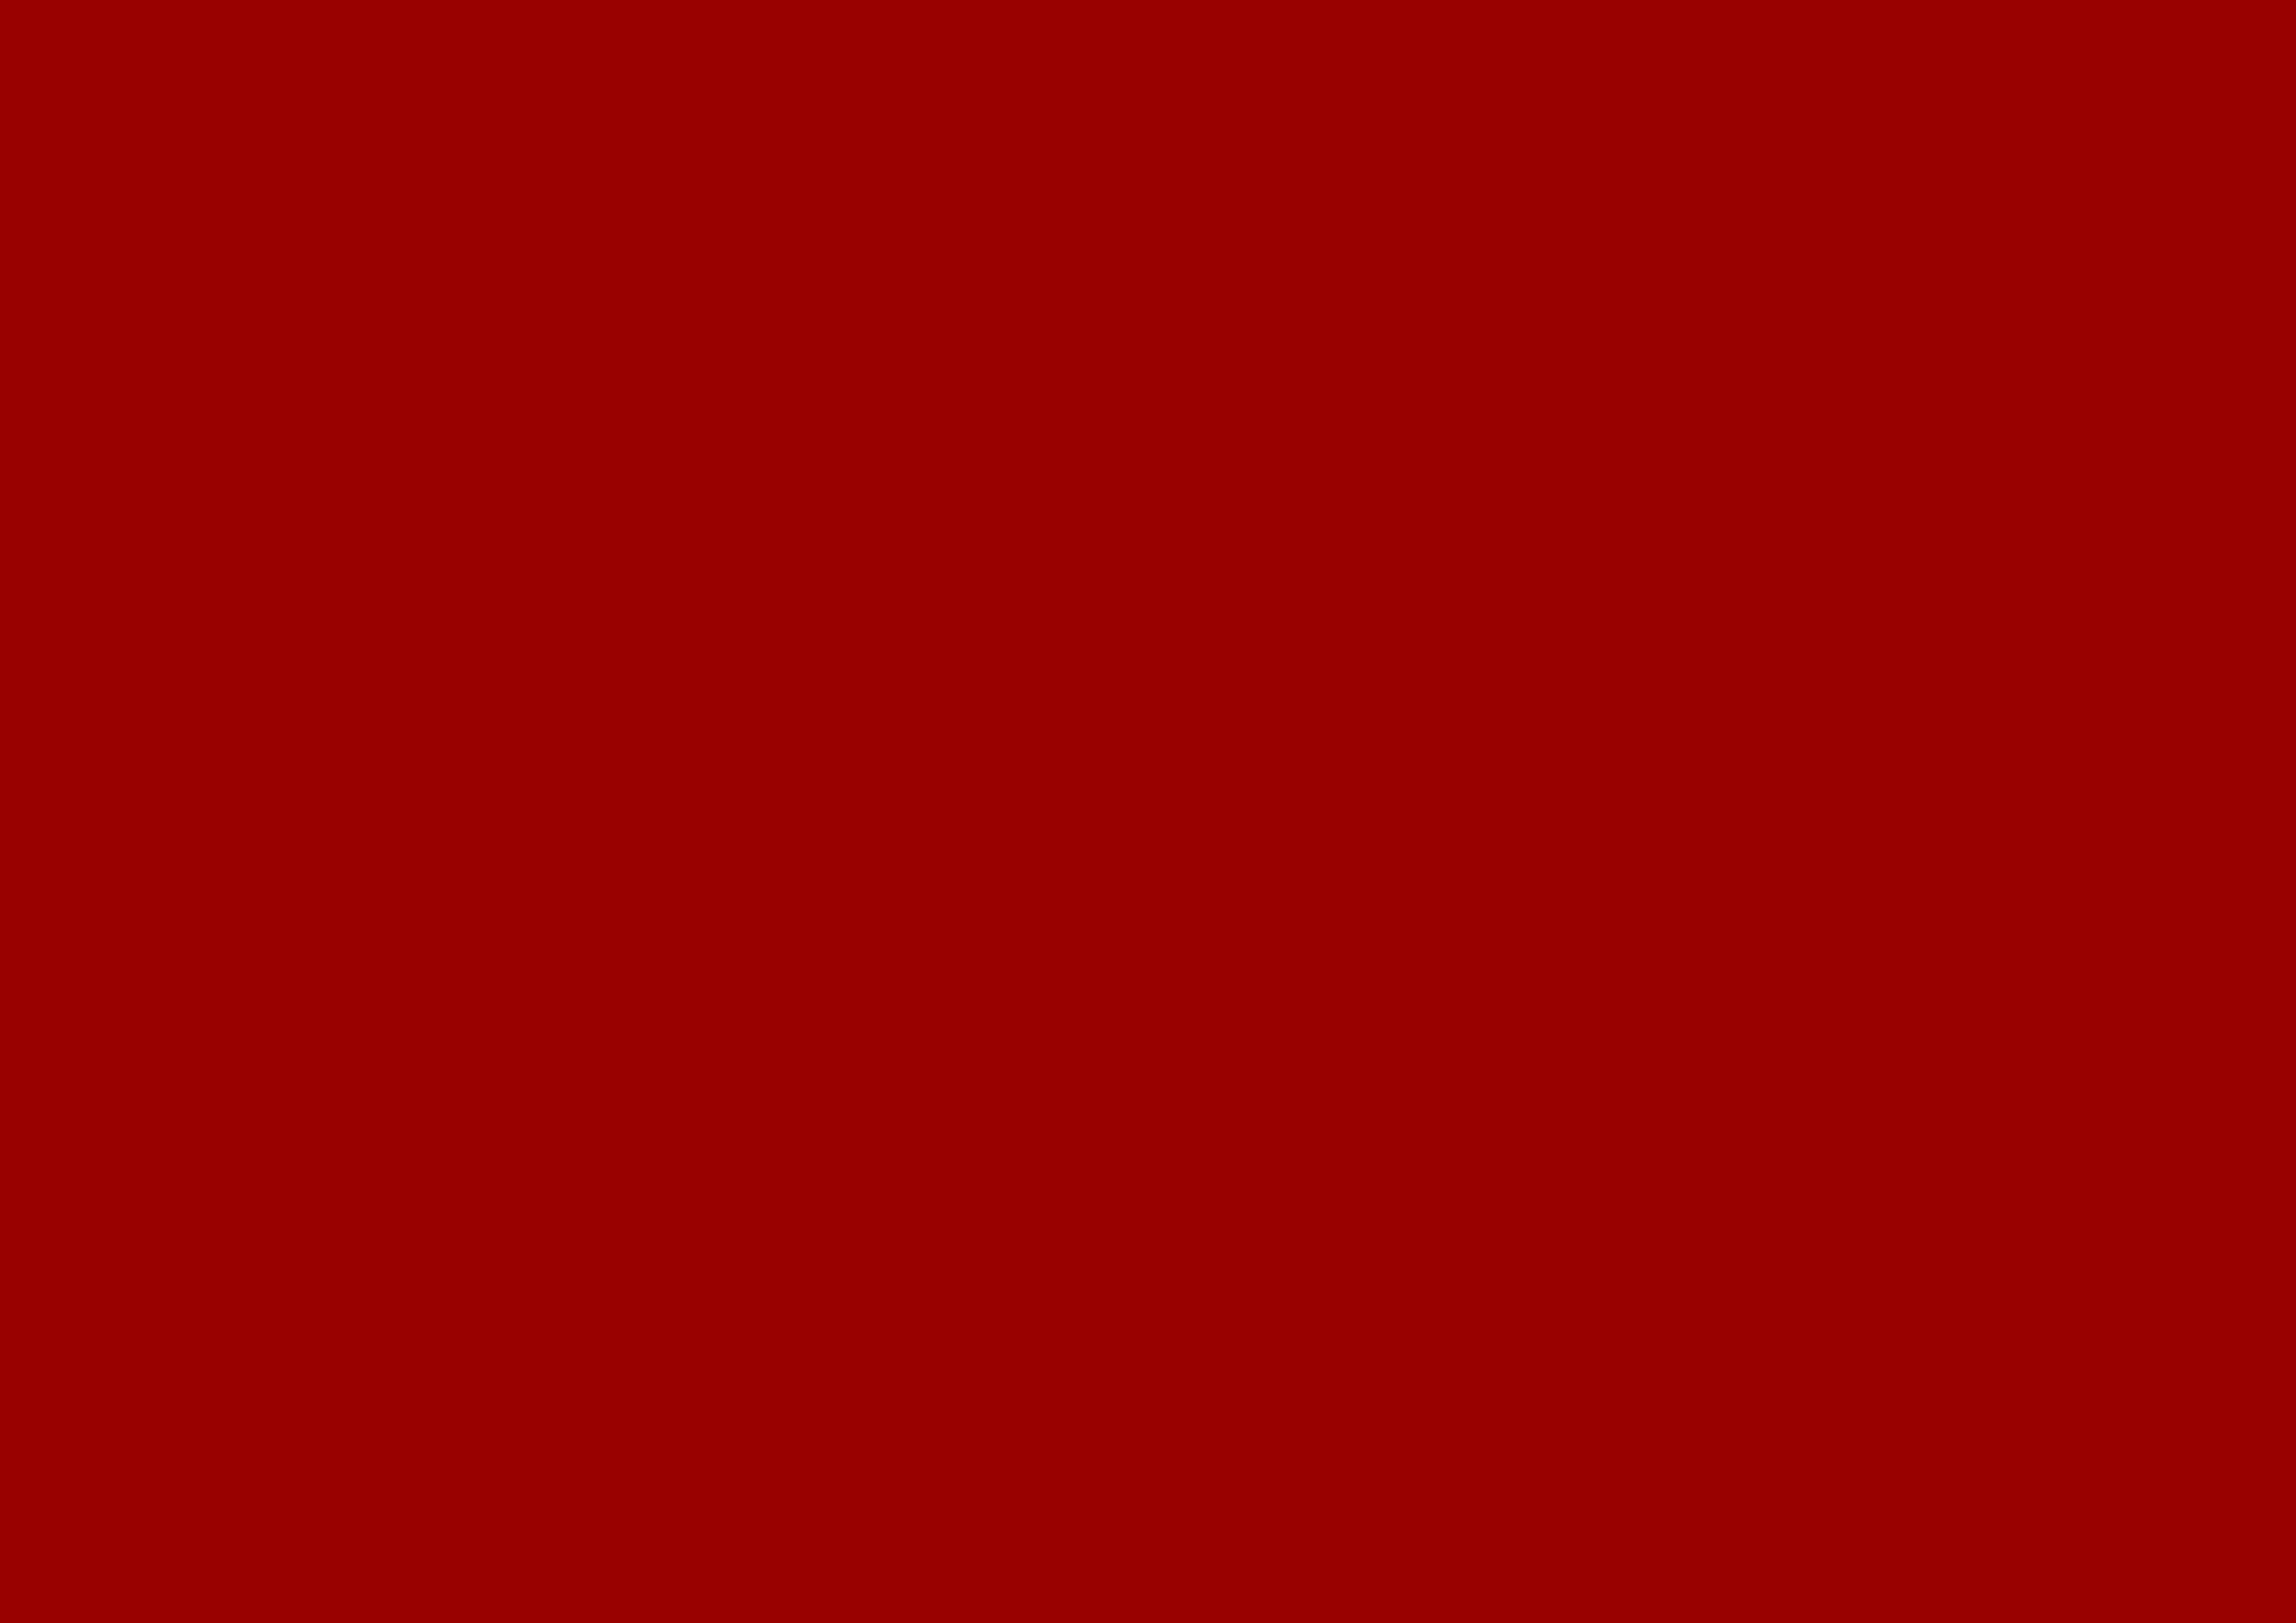 3508x2480 OU Crimson Red Solid Color Background